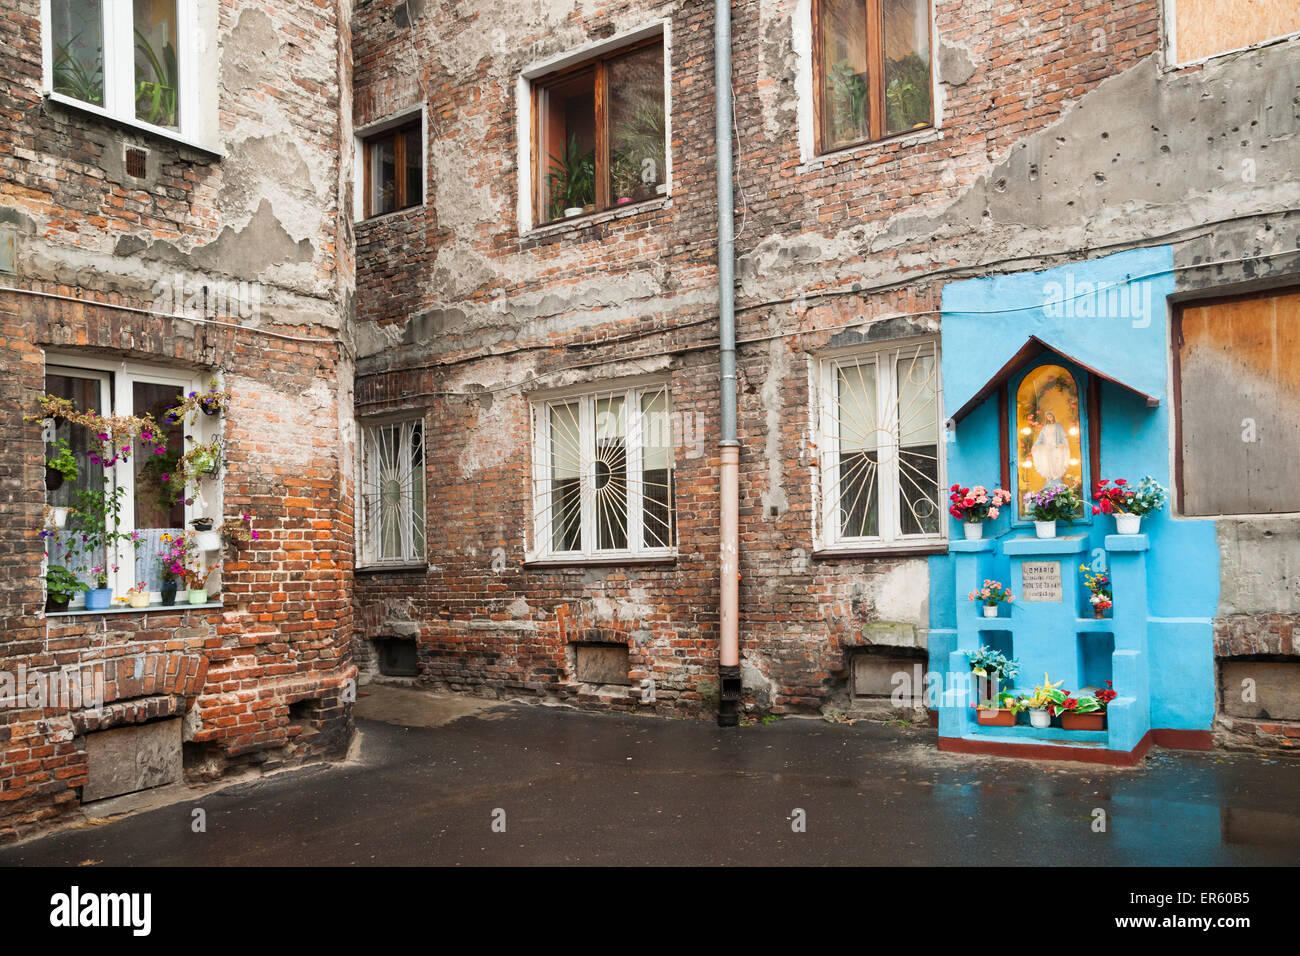 Blue colored shrine with flowers in a bullet-ridden courtyard of an apartment building damaged in war, Warsaw - Stock Image